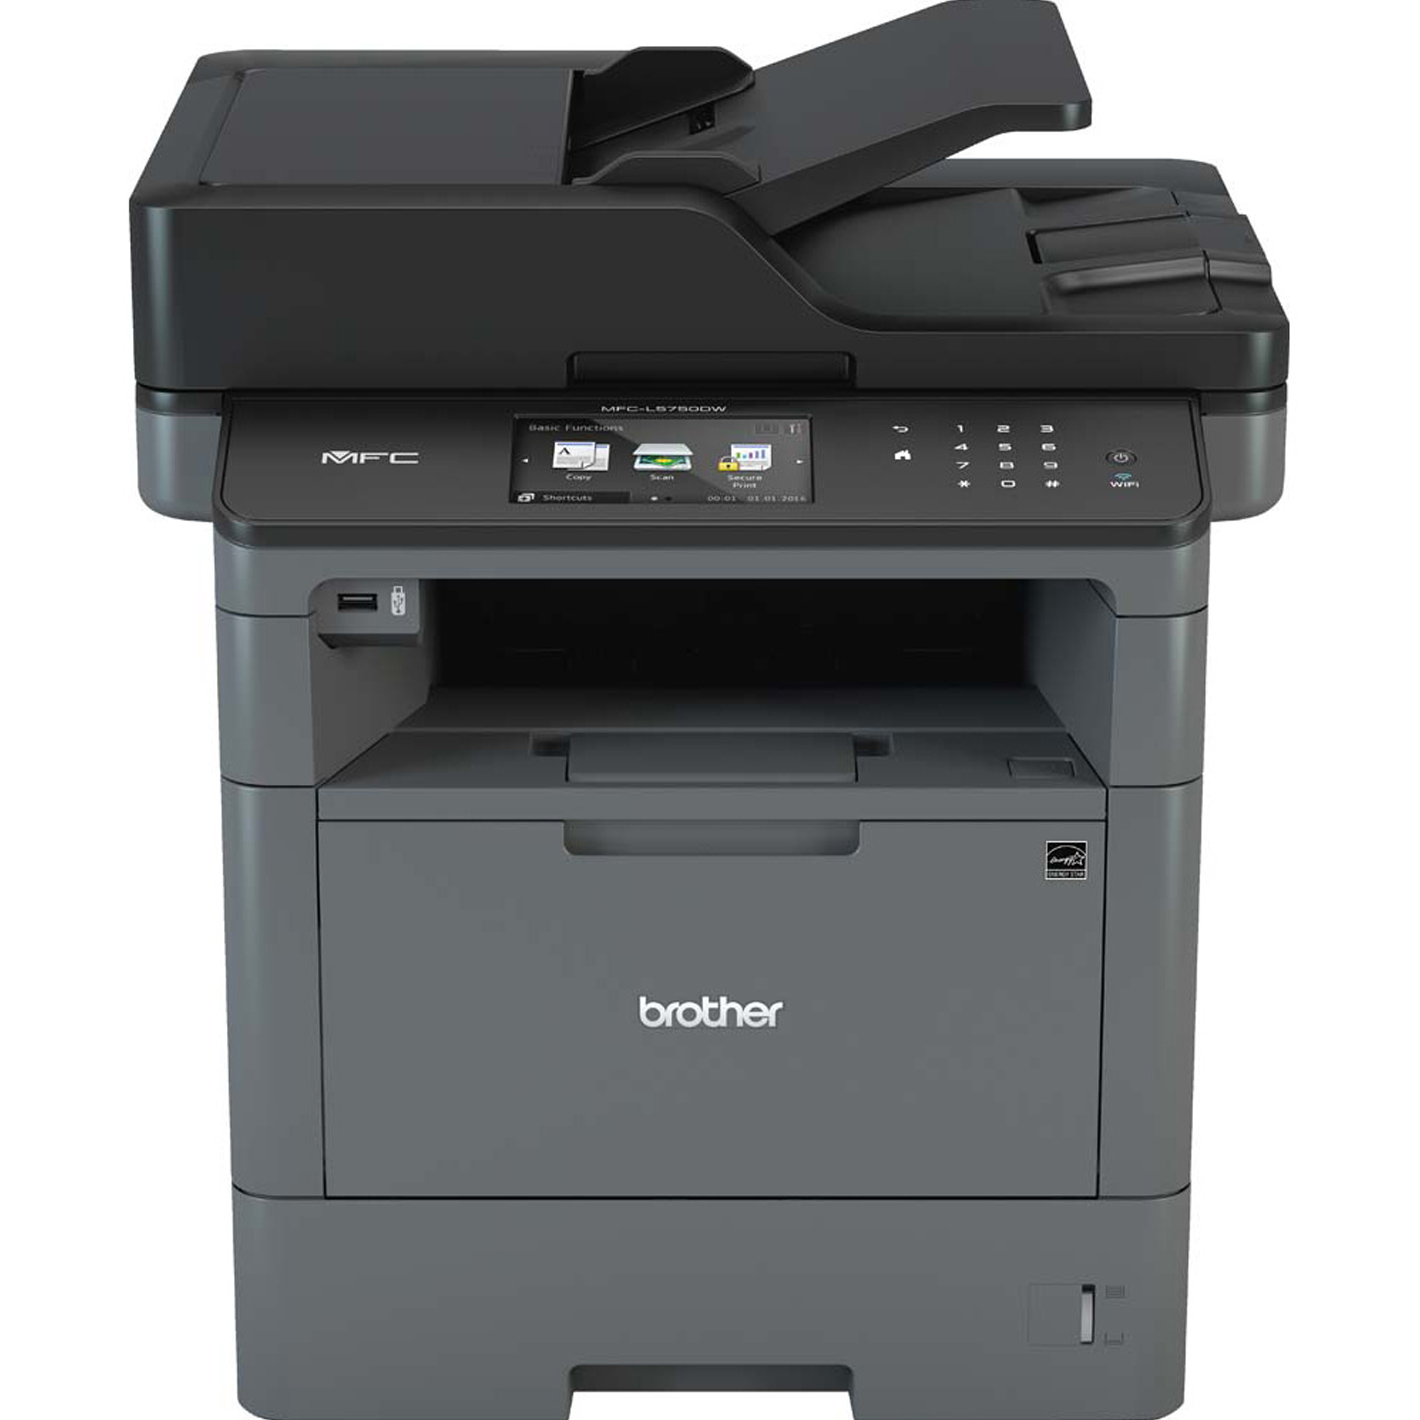 Mfc-l5750dw - Multi Function Printer - Laser - A4 - USB / Ethernet